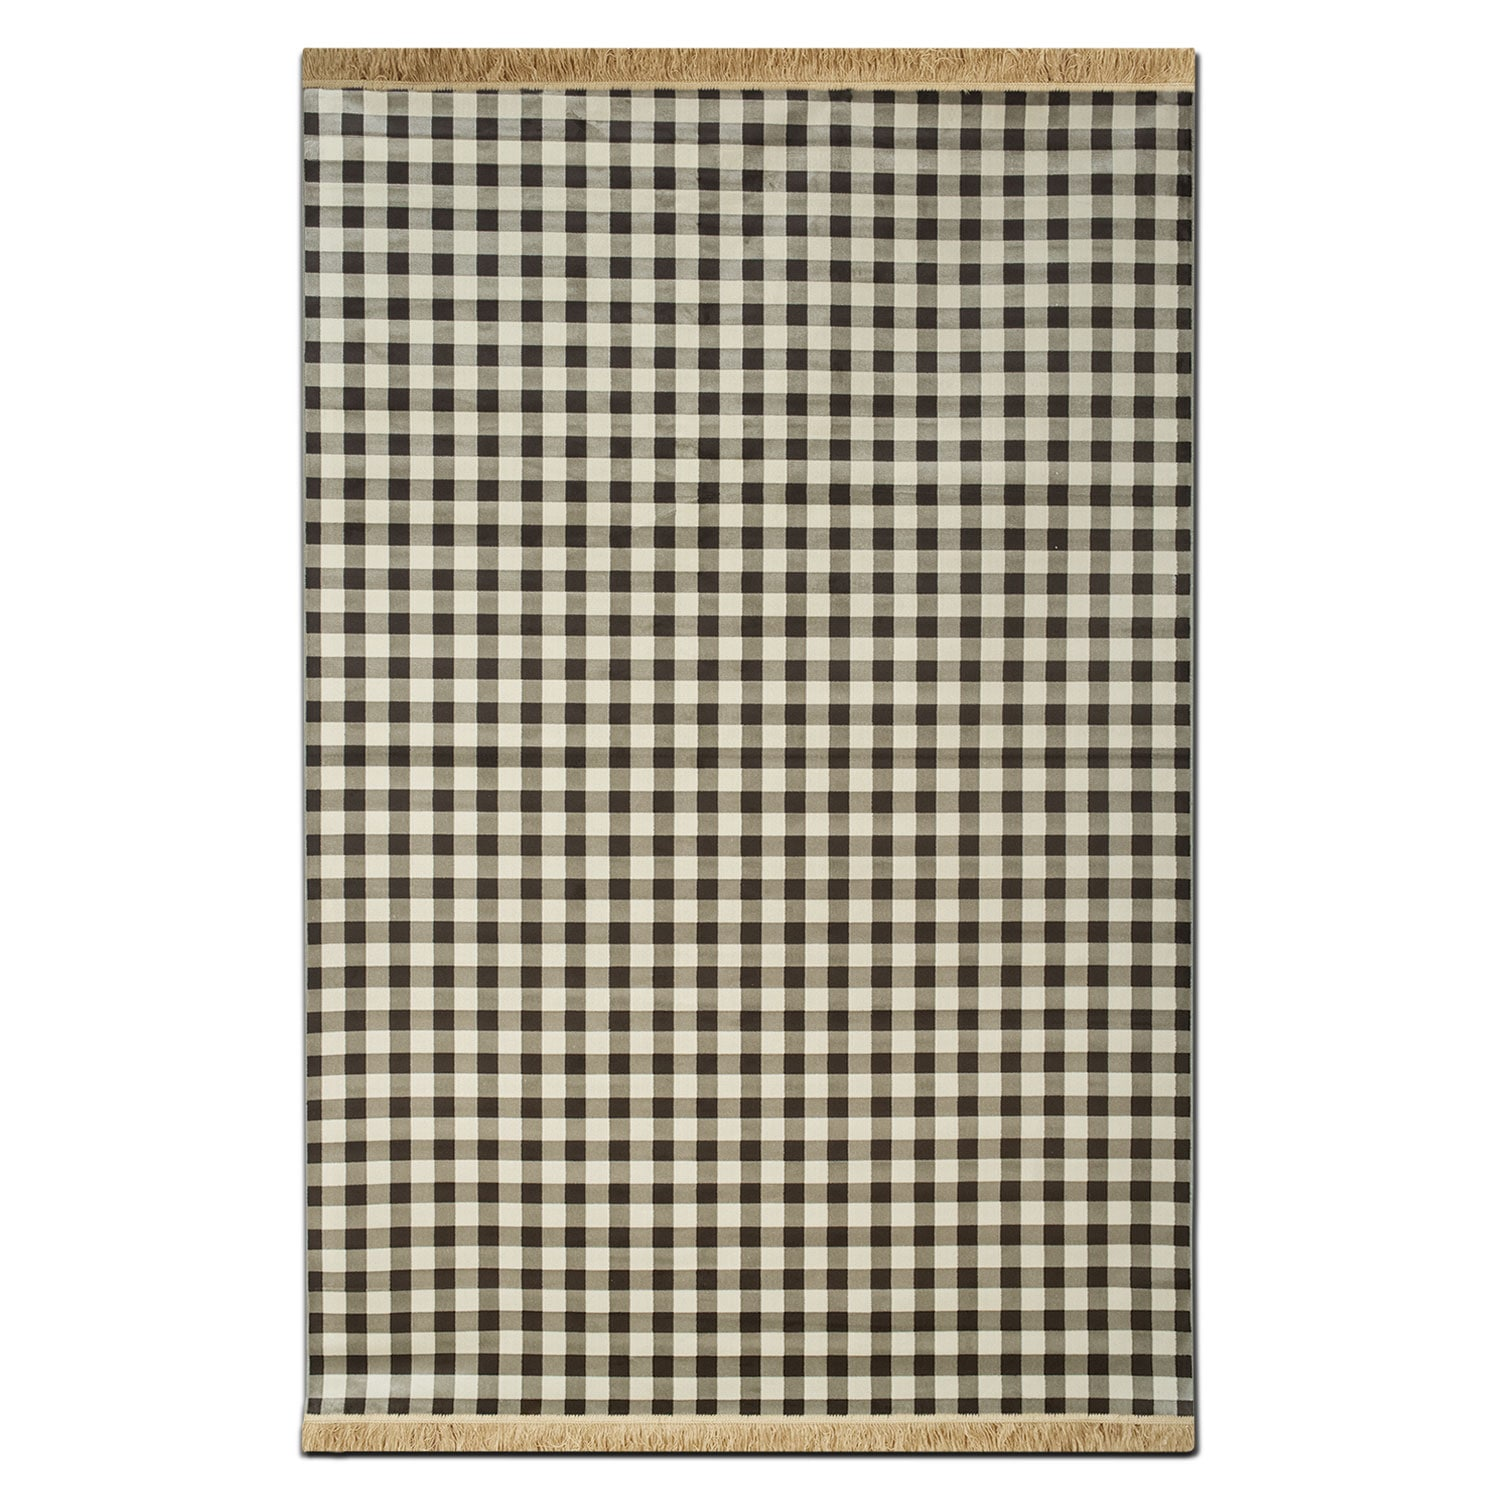 Rugs - Sonoma 5' x 8' Area Rug - Black and White